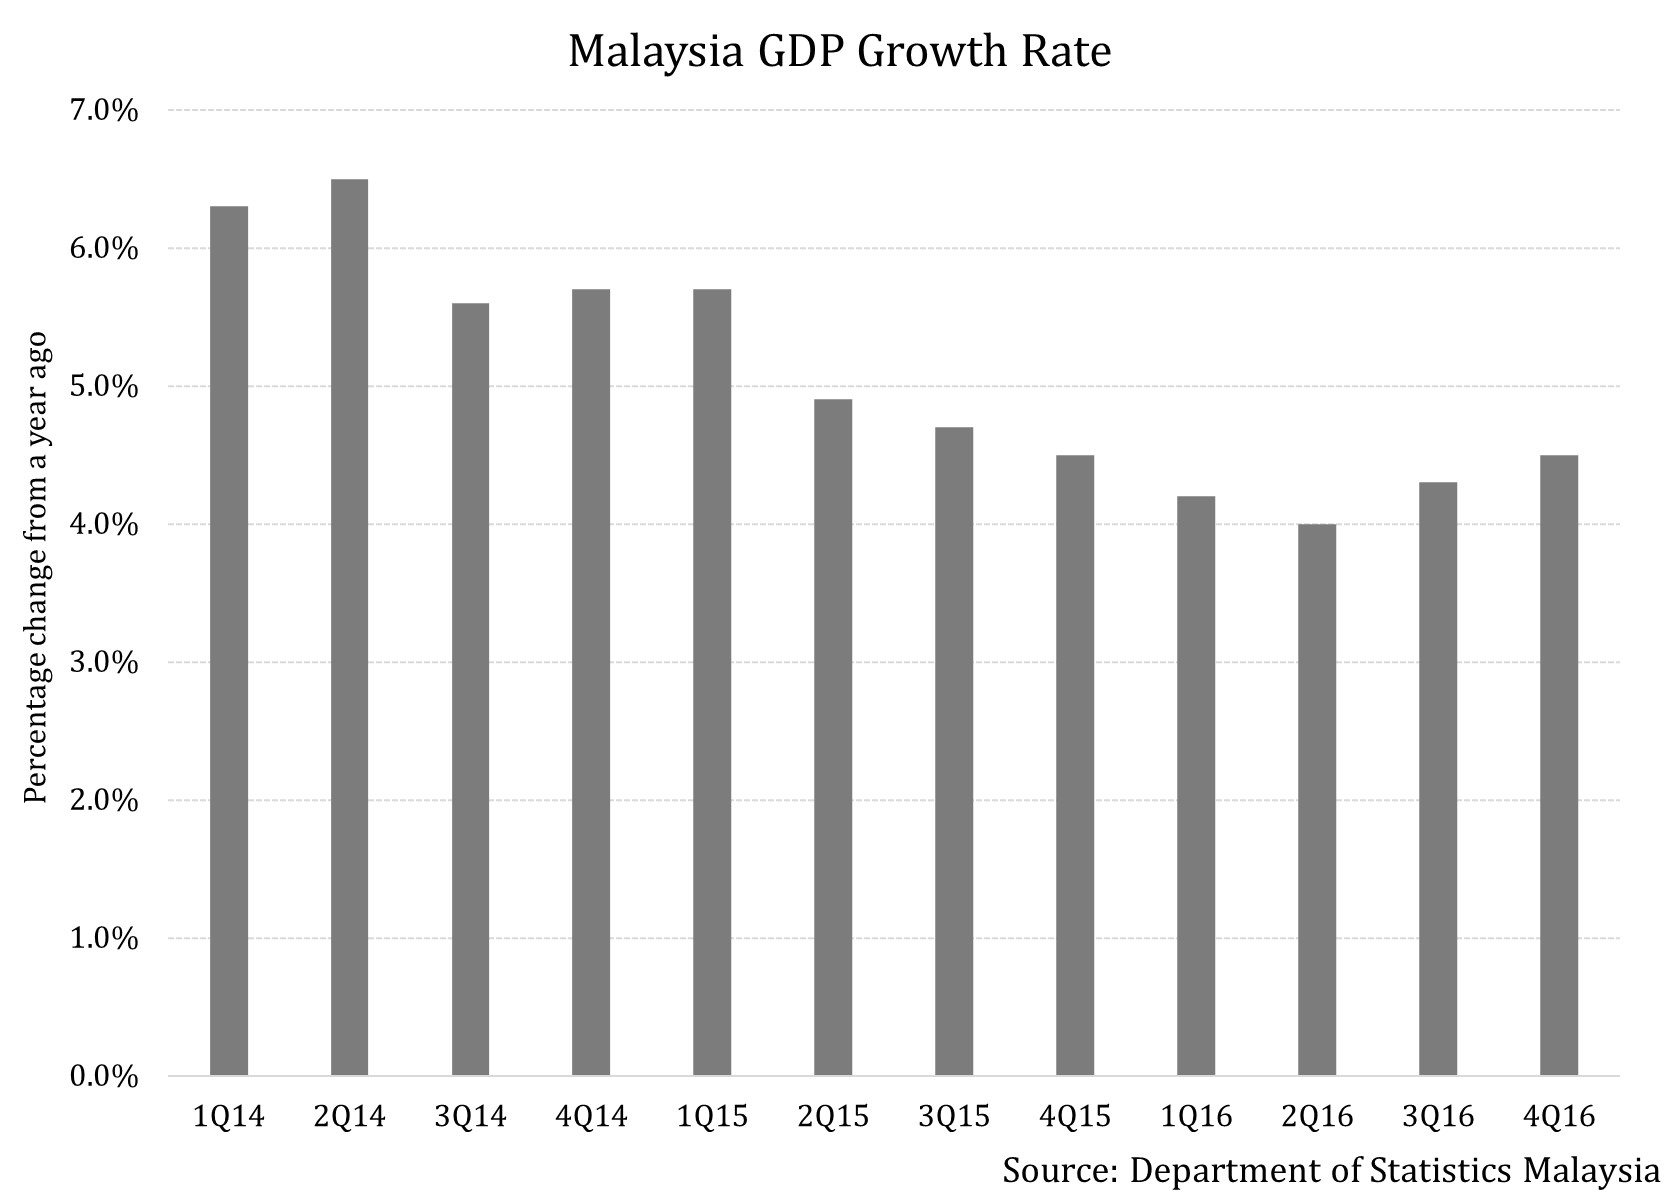 economic growth in malaysia Malaysia registered a gdp growth of 42% last year, down from 5% in 2015 and 6% in 2014 the country posted a 56% gdp expansion in the first quarter ended march 31 compared to the same quarter a.